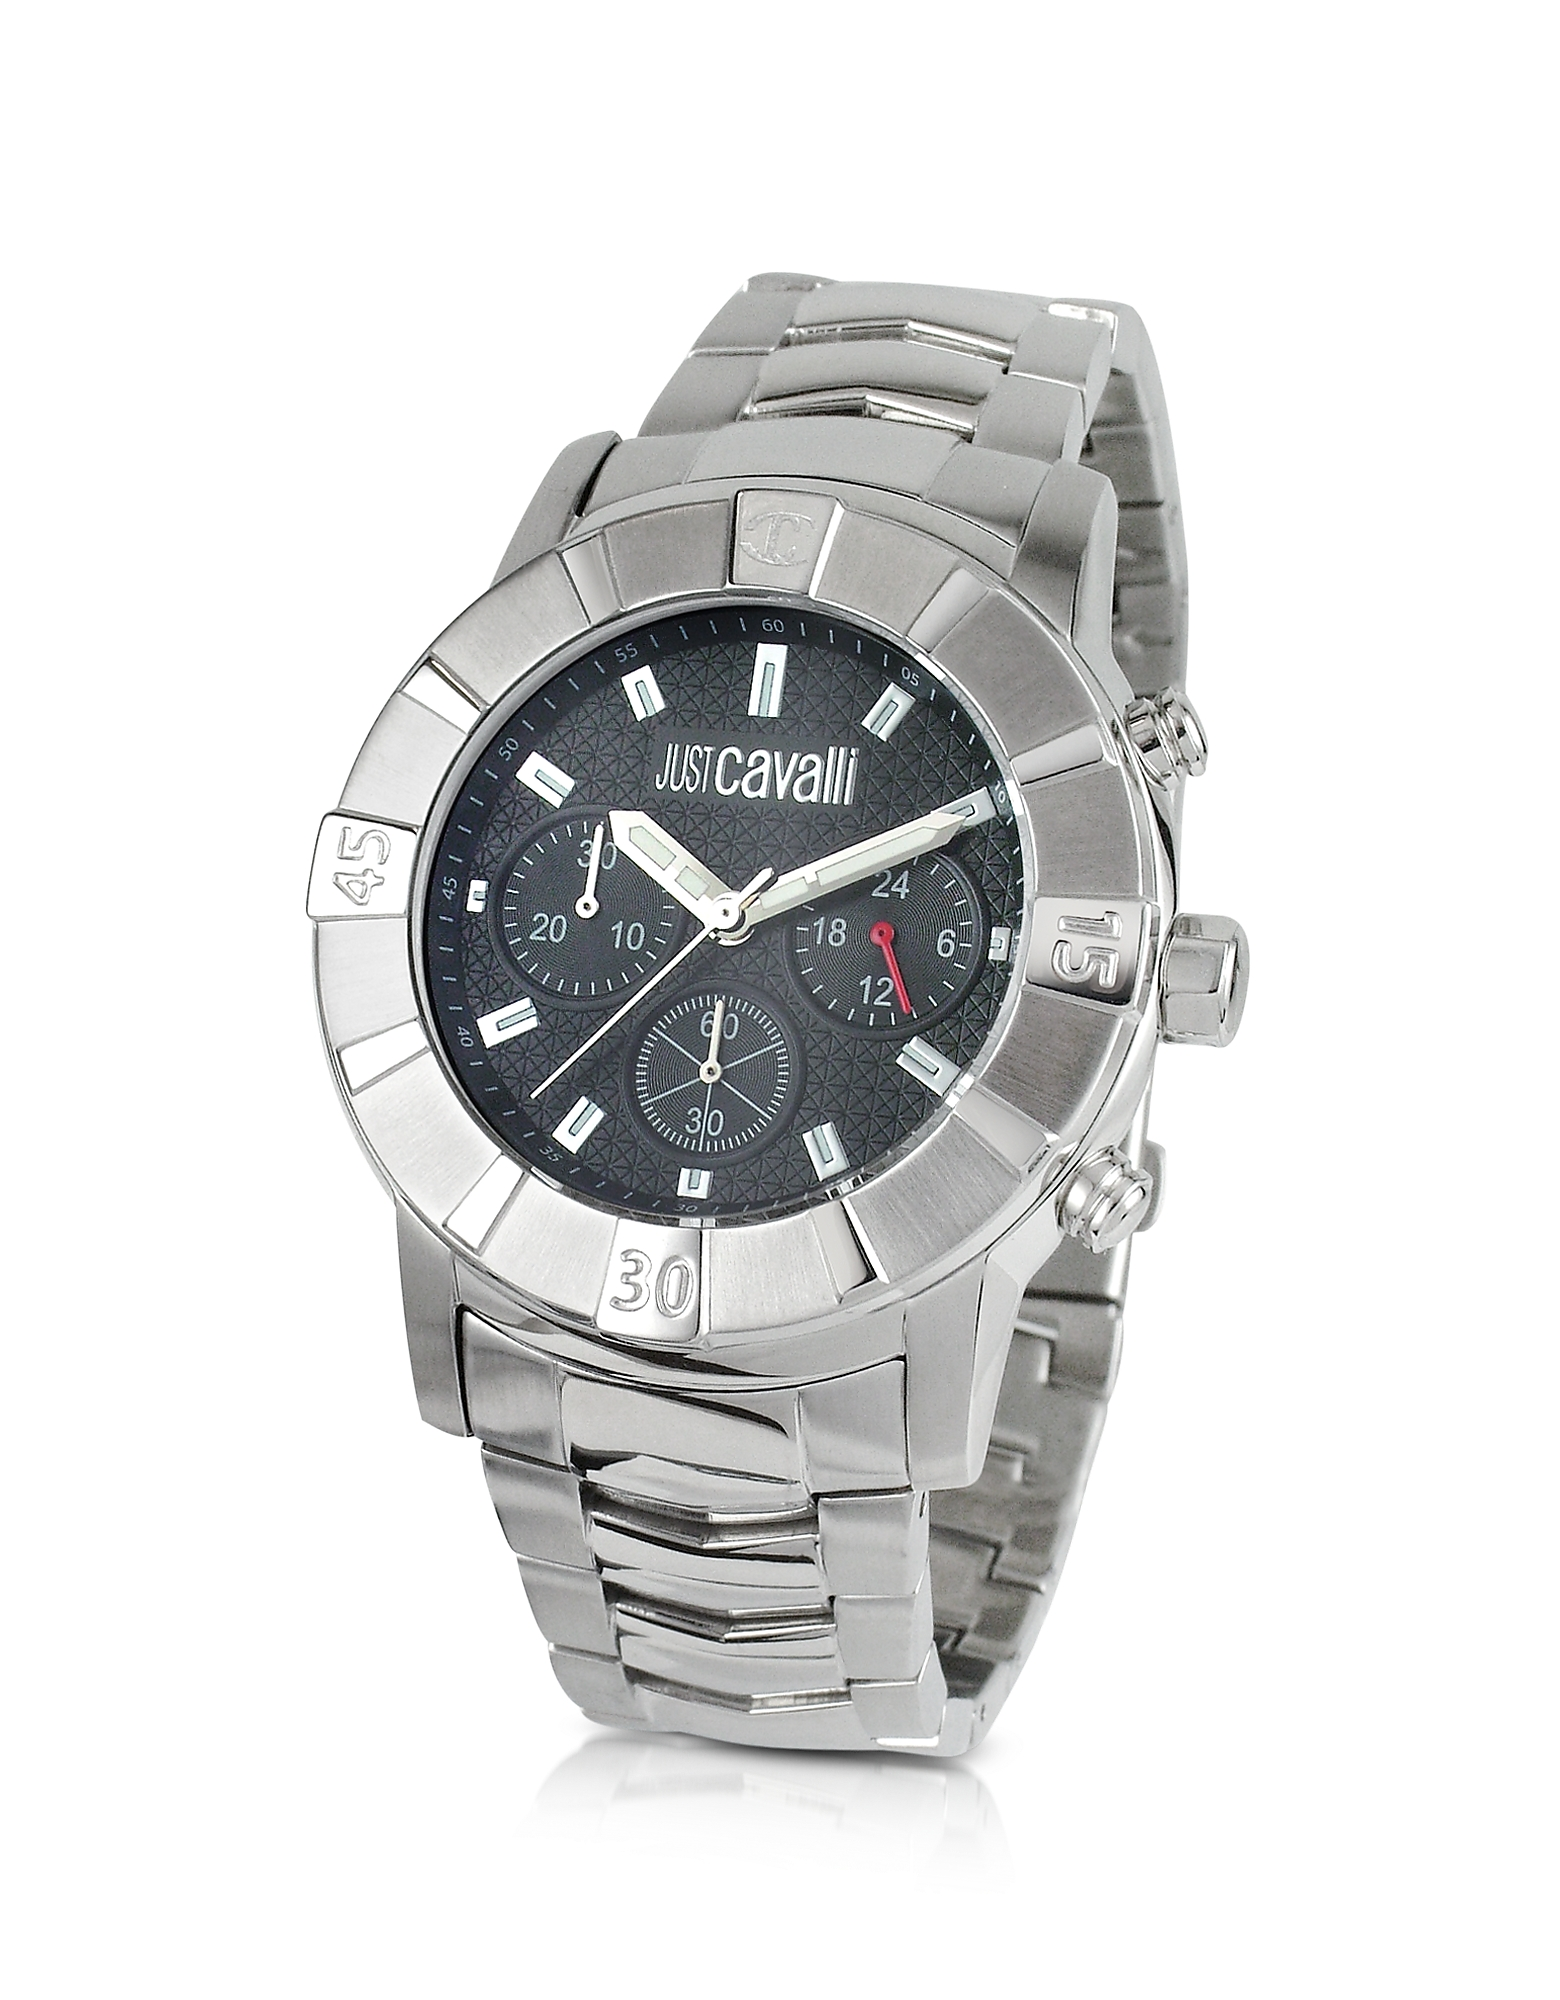 Just Cavalli Men's Watches, Crystal Gent - Stainless Steel Bracelet Chronograph Watch